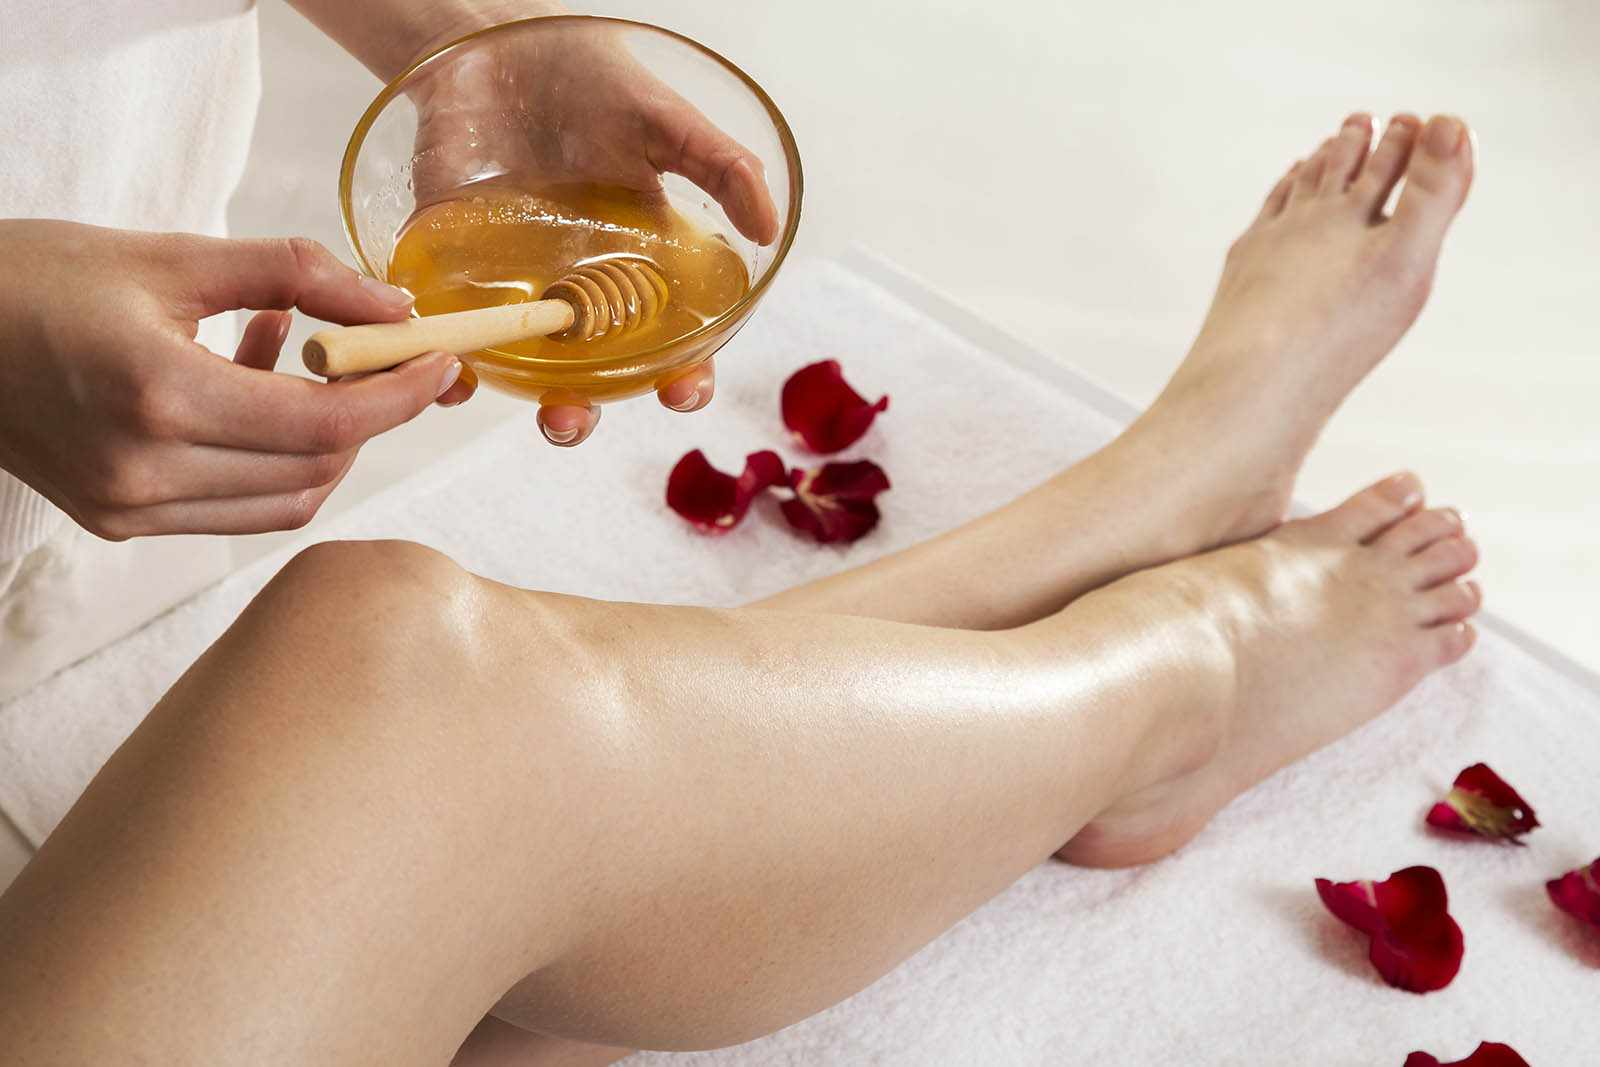 The Pros and Cons of Shaving, Waxing, and LaserRemoval